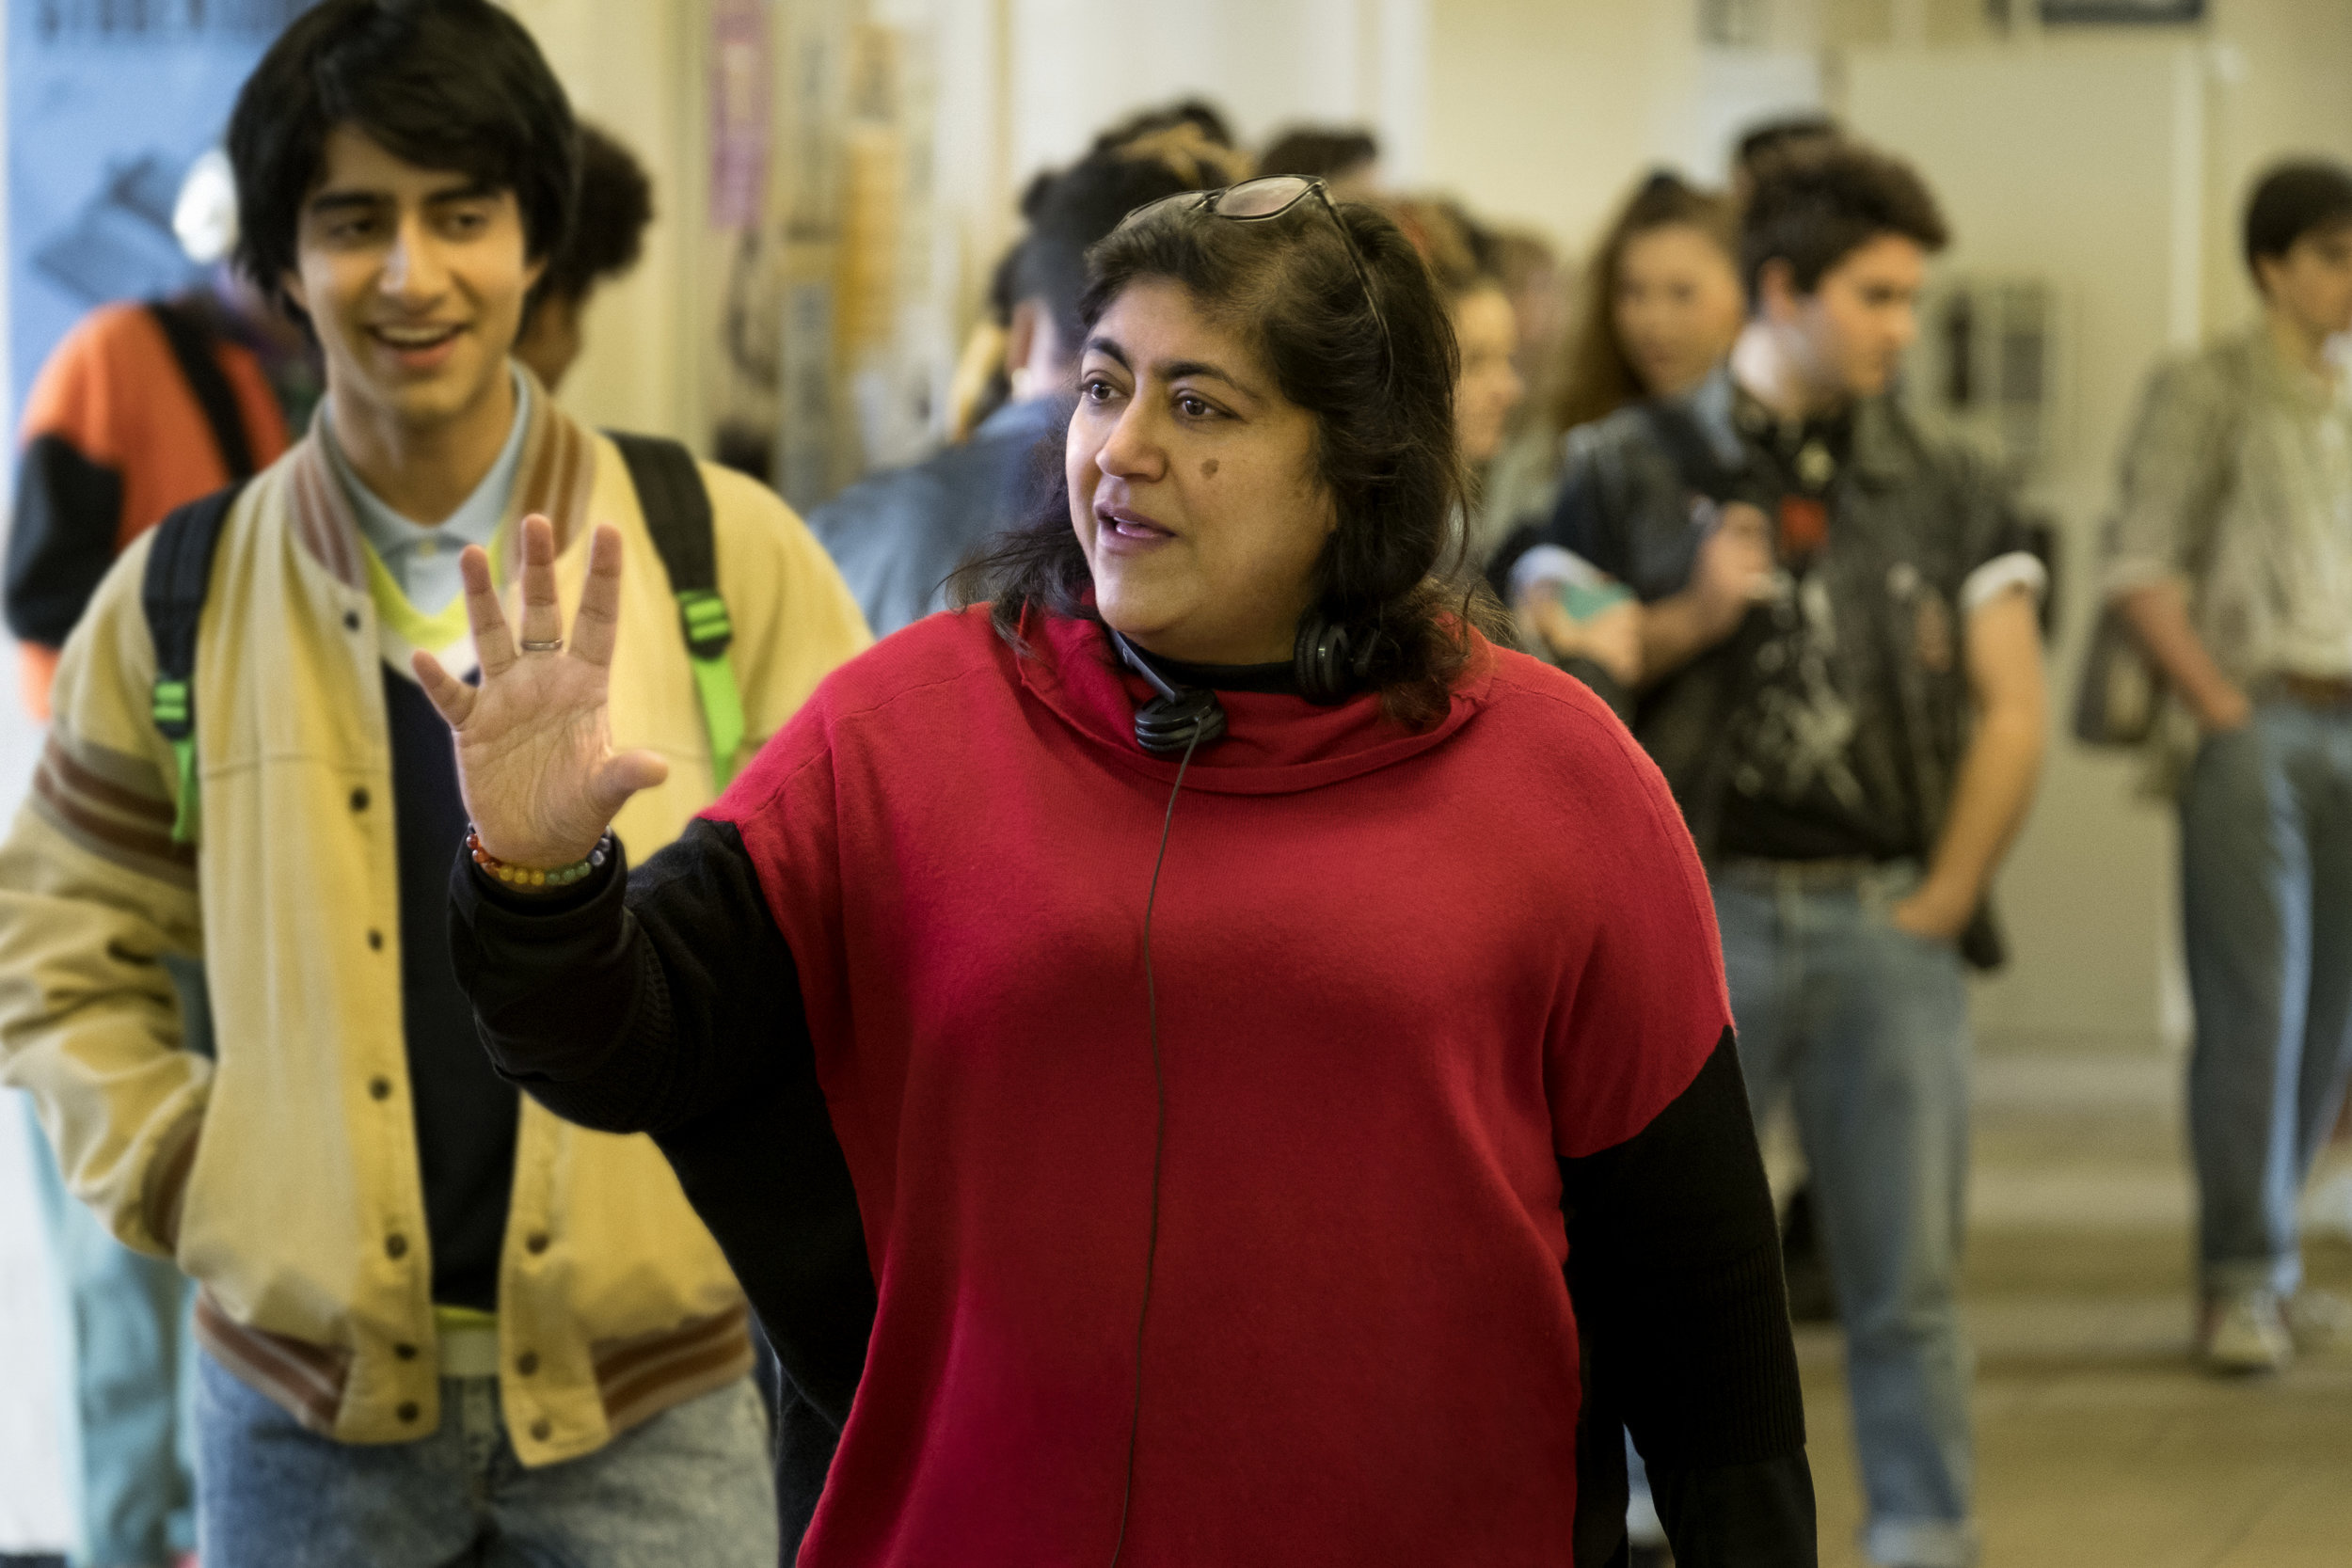 (L-r) VIVEIK KALRA and director GURINDER CHADHA on the set of New Line Cinema's inspirational drama BLINDED BY THE LIGHT, a Warner Bros. Pictures release. Copyright: © 2019 WARNER BROS. ENTERTAINMENT INC. Photo Credit: Nick Wall